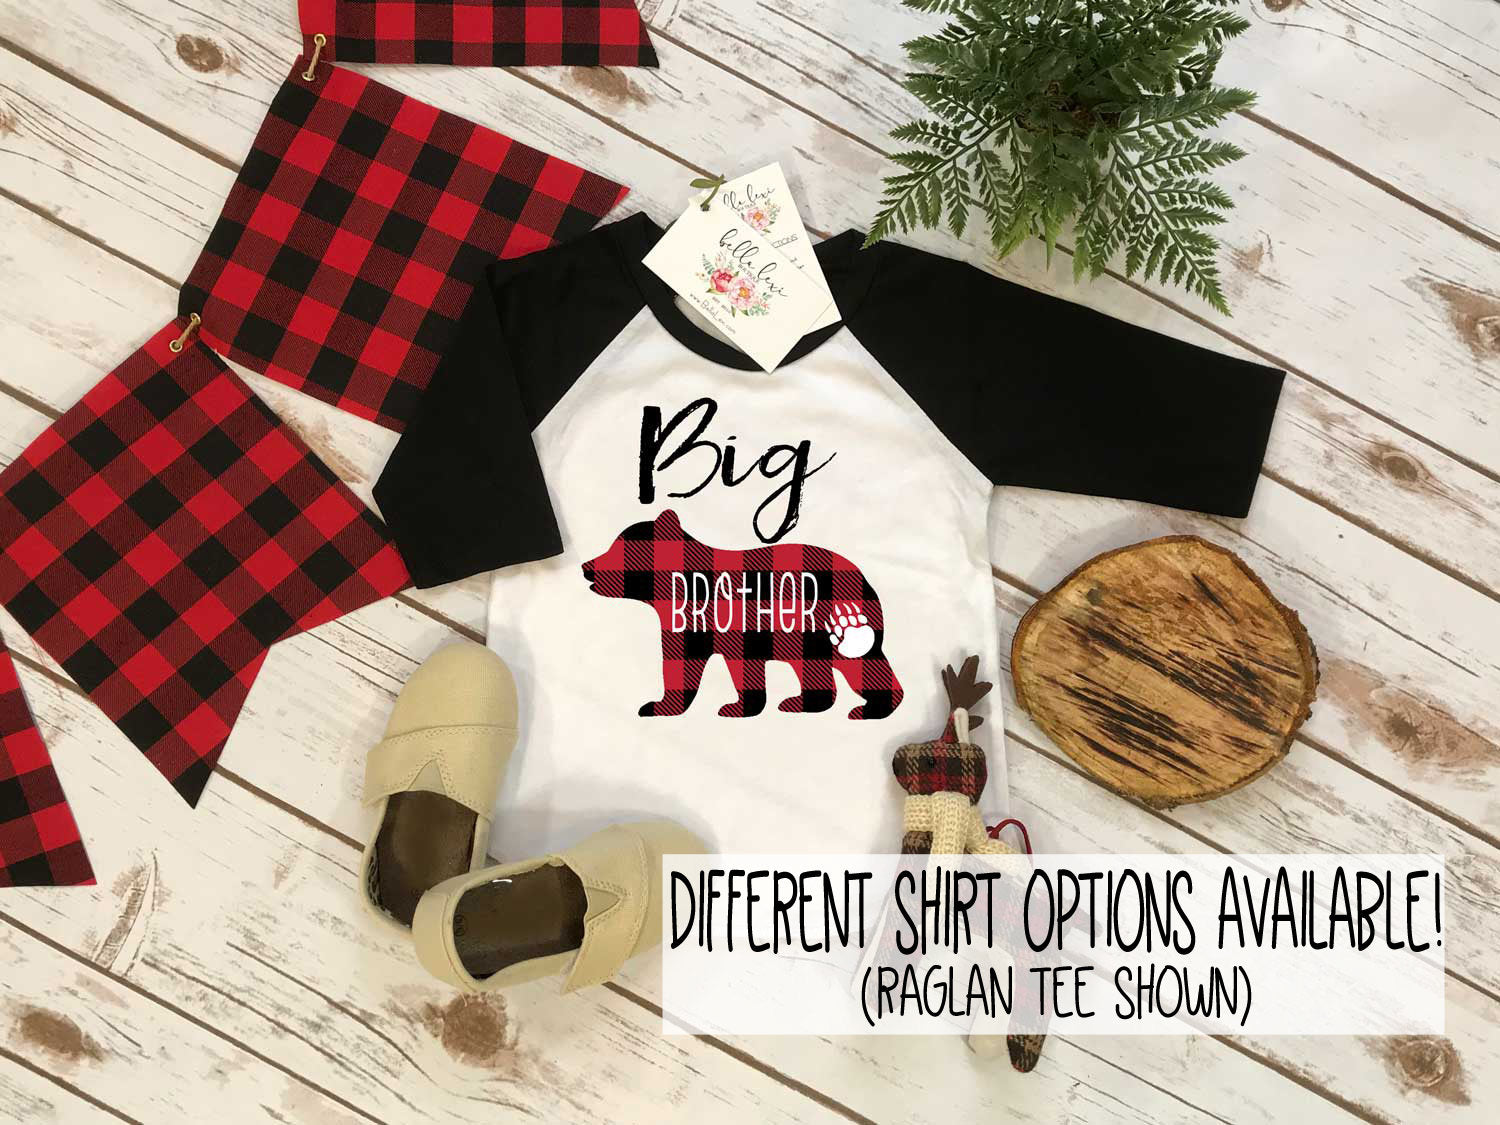 Big Brother Shirt, Buffalo Plaid Bear, Brothers Shirts, Big Brother Bear Shirt, Buffalo Plaid Shirt - Bella Lexi Boutique